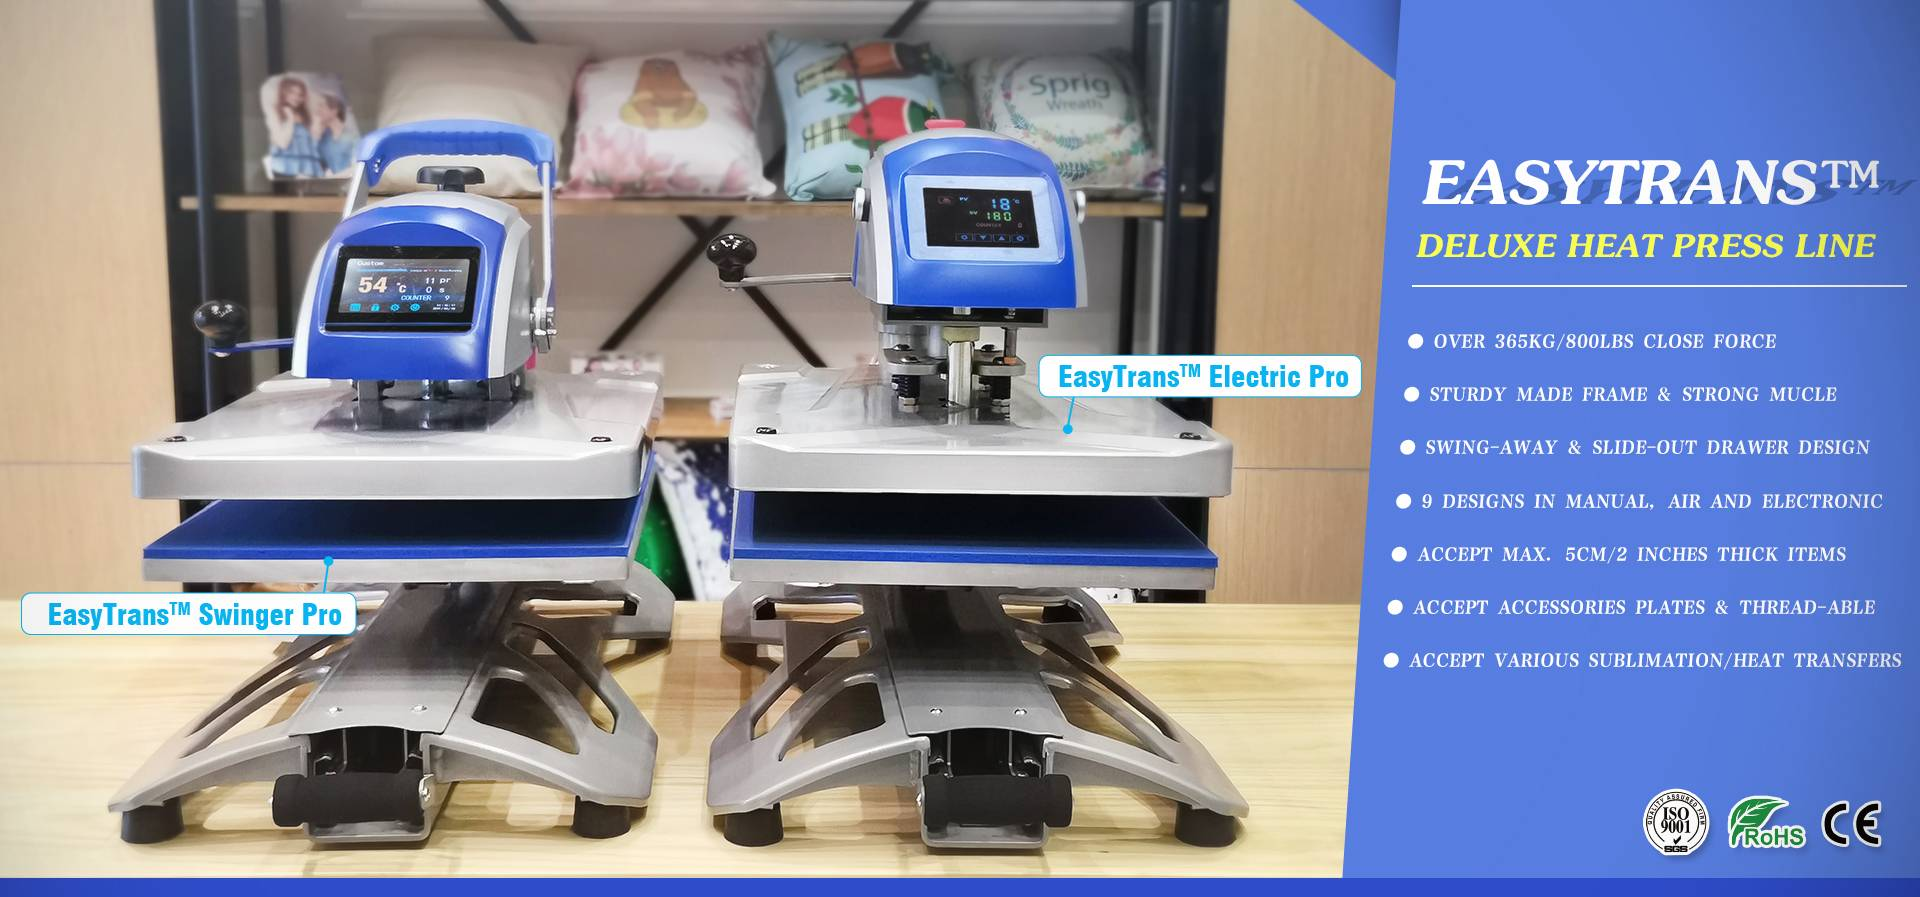 EasyTrans ™ Deluxe Heat Press Hattı